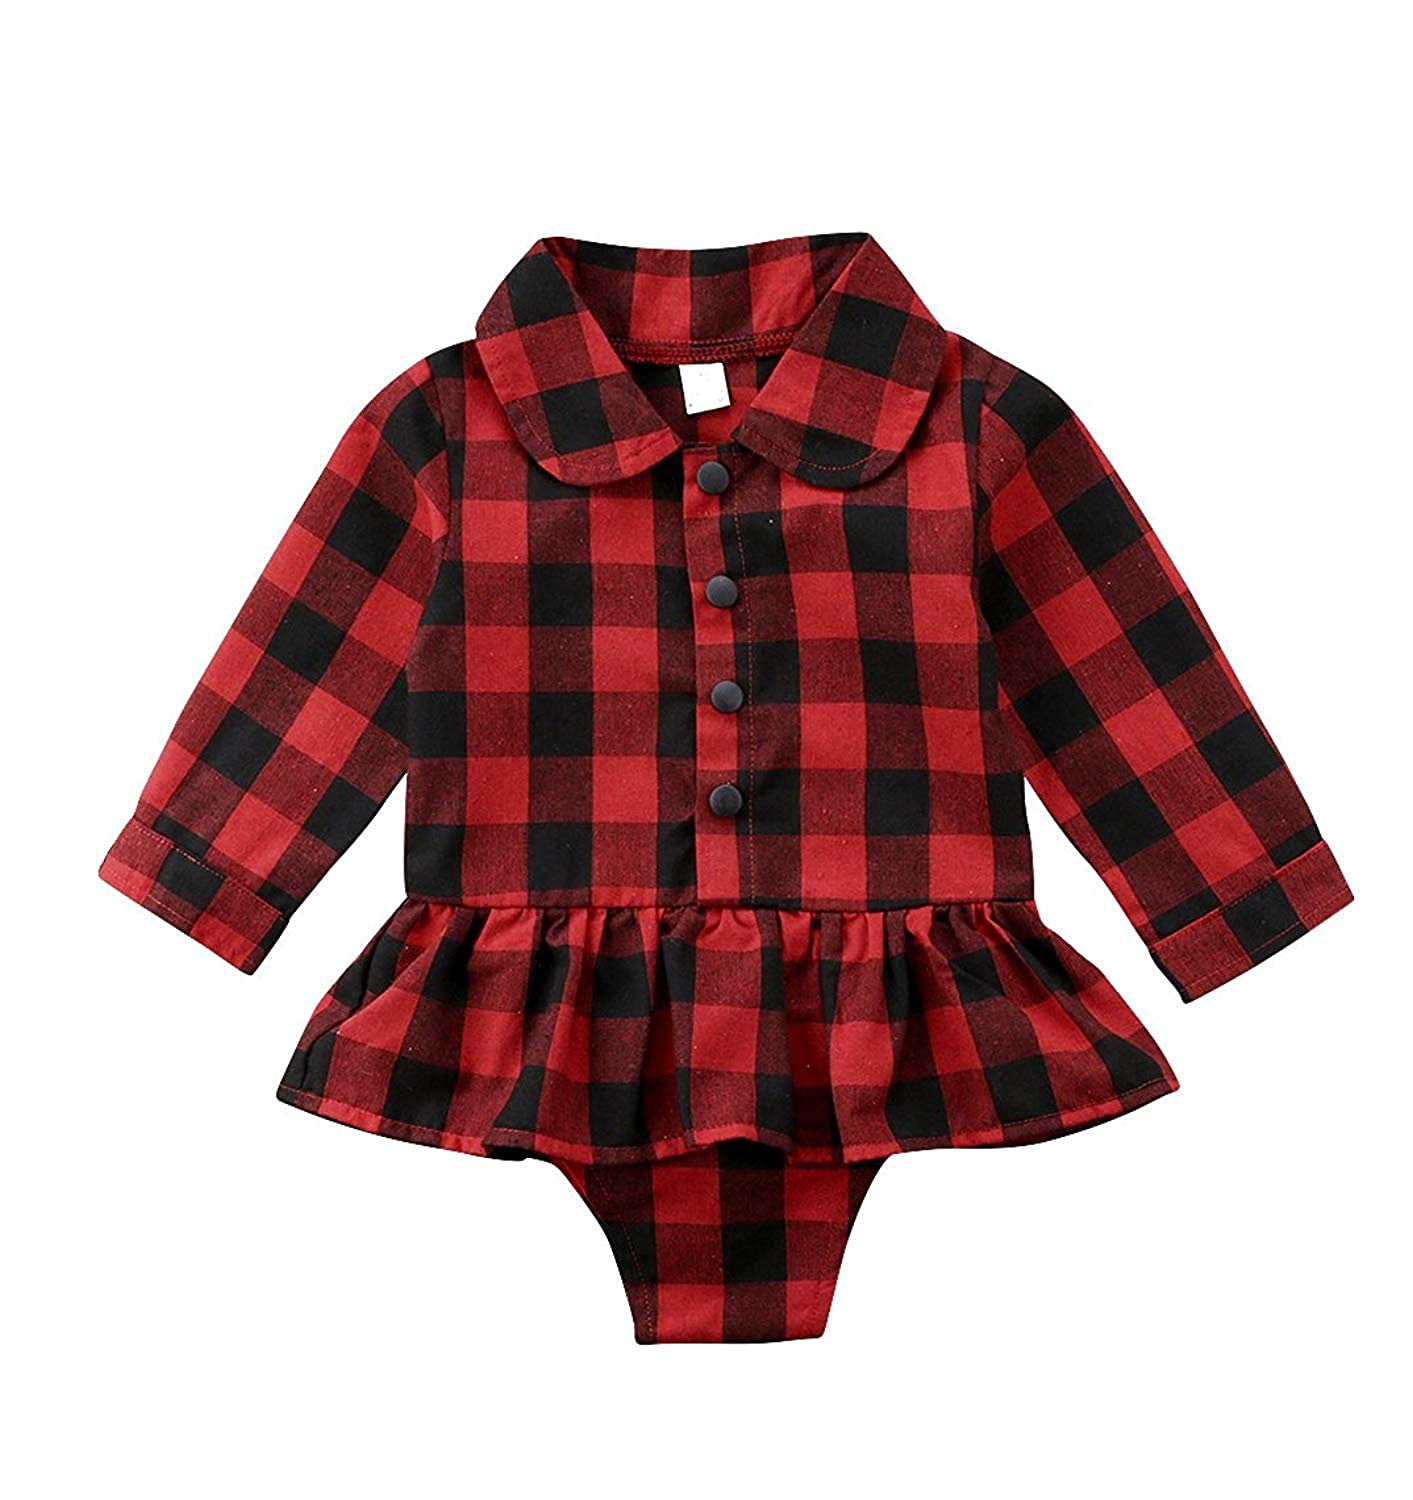 BELS Toddler Baby Girls Red Plaids Long Sleeve Shirt Collar Ruffles Princess Dress Romper